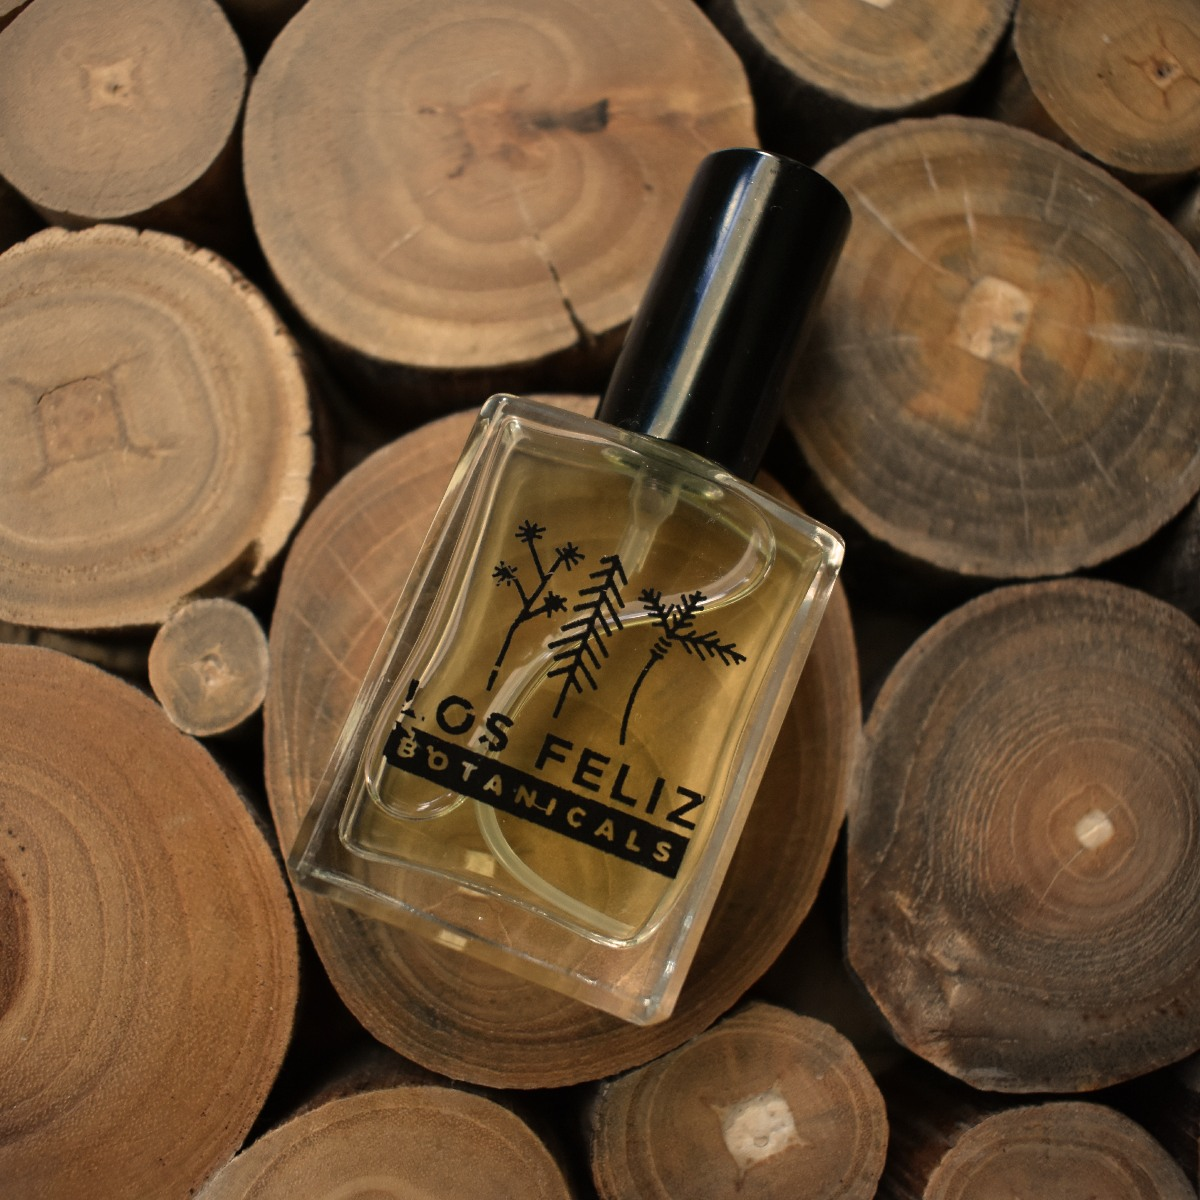 Los Feliz Botanicals  - This non toxic perfume is never altered and contains no additives, synthetics, or fillers. Bonus it is hand made in downtown LA.Find this parfum online HERE for $55